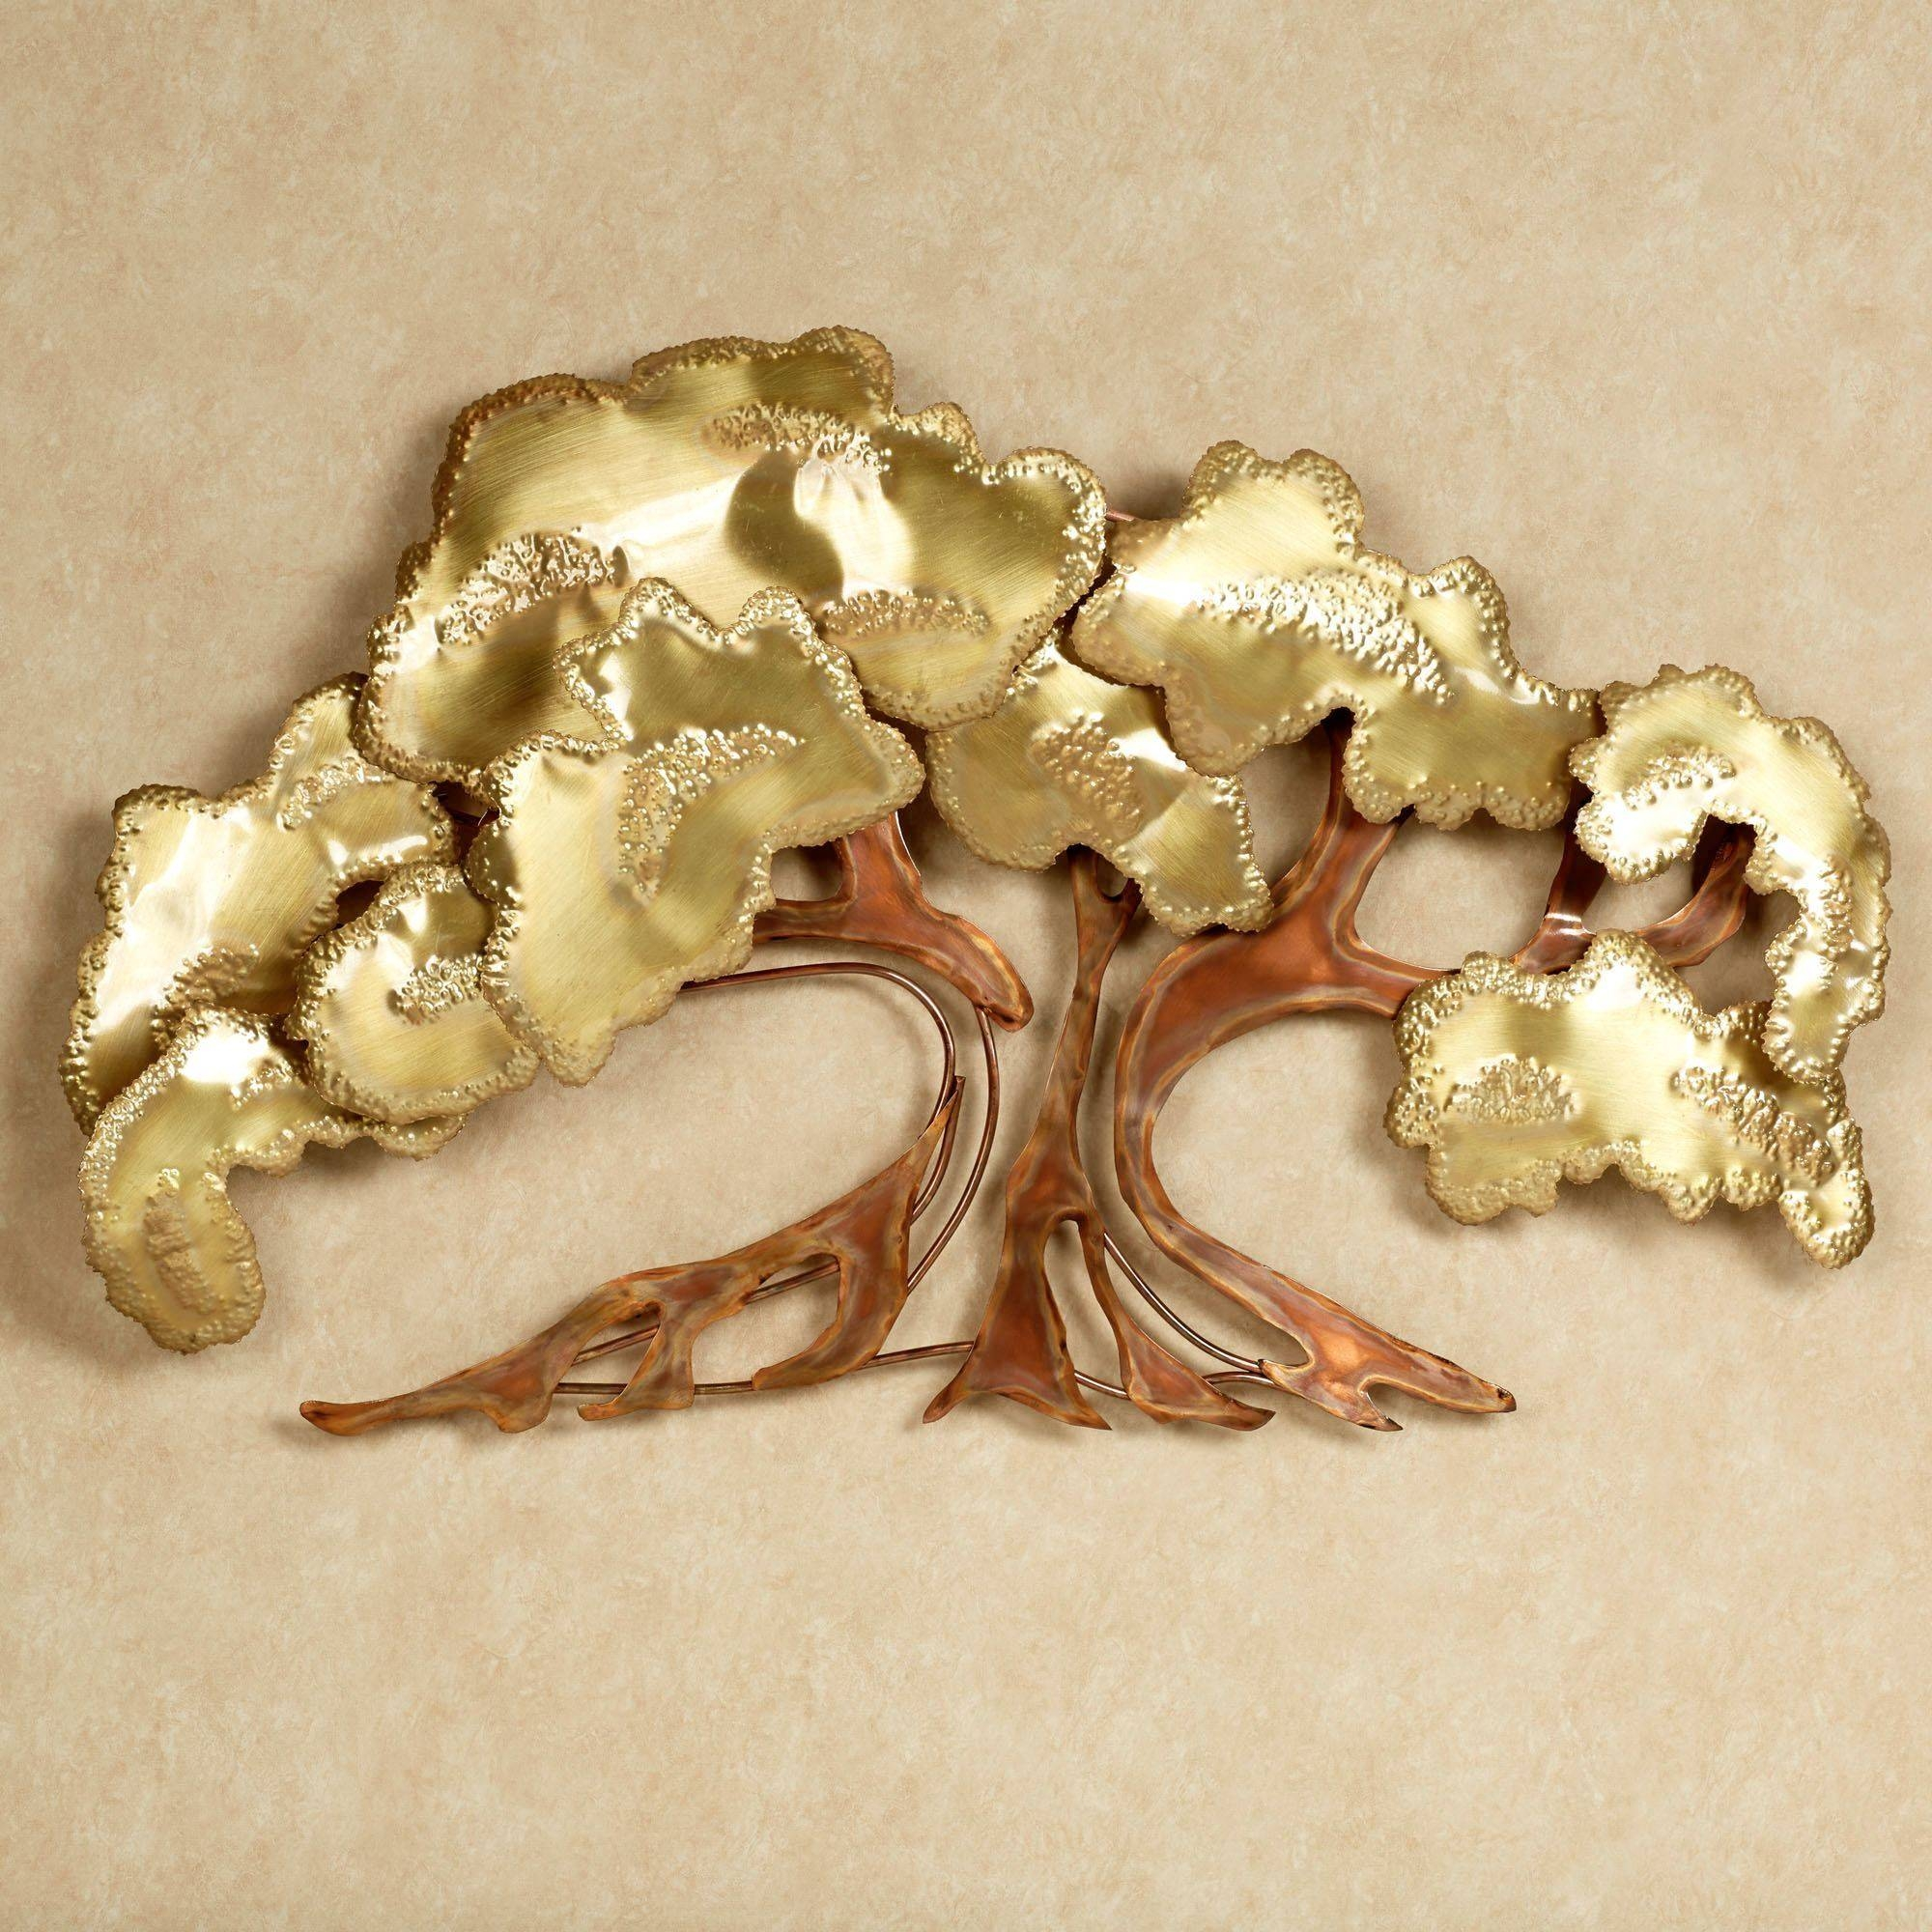 Zen Tree Metal Wall Sculpture Within Best And Newest Tree Sculpture Wall Art (Gallery 18 of 20)